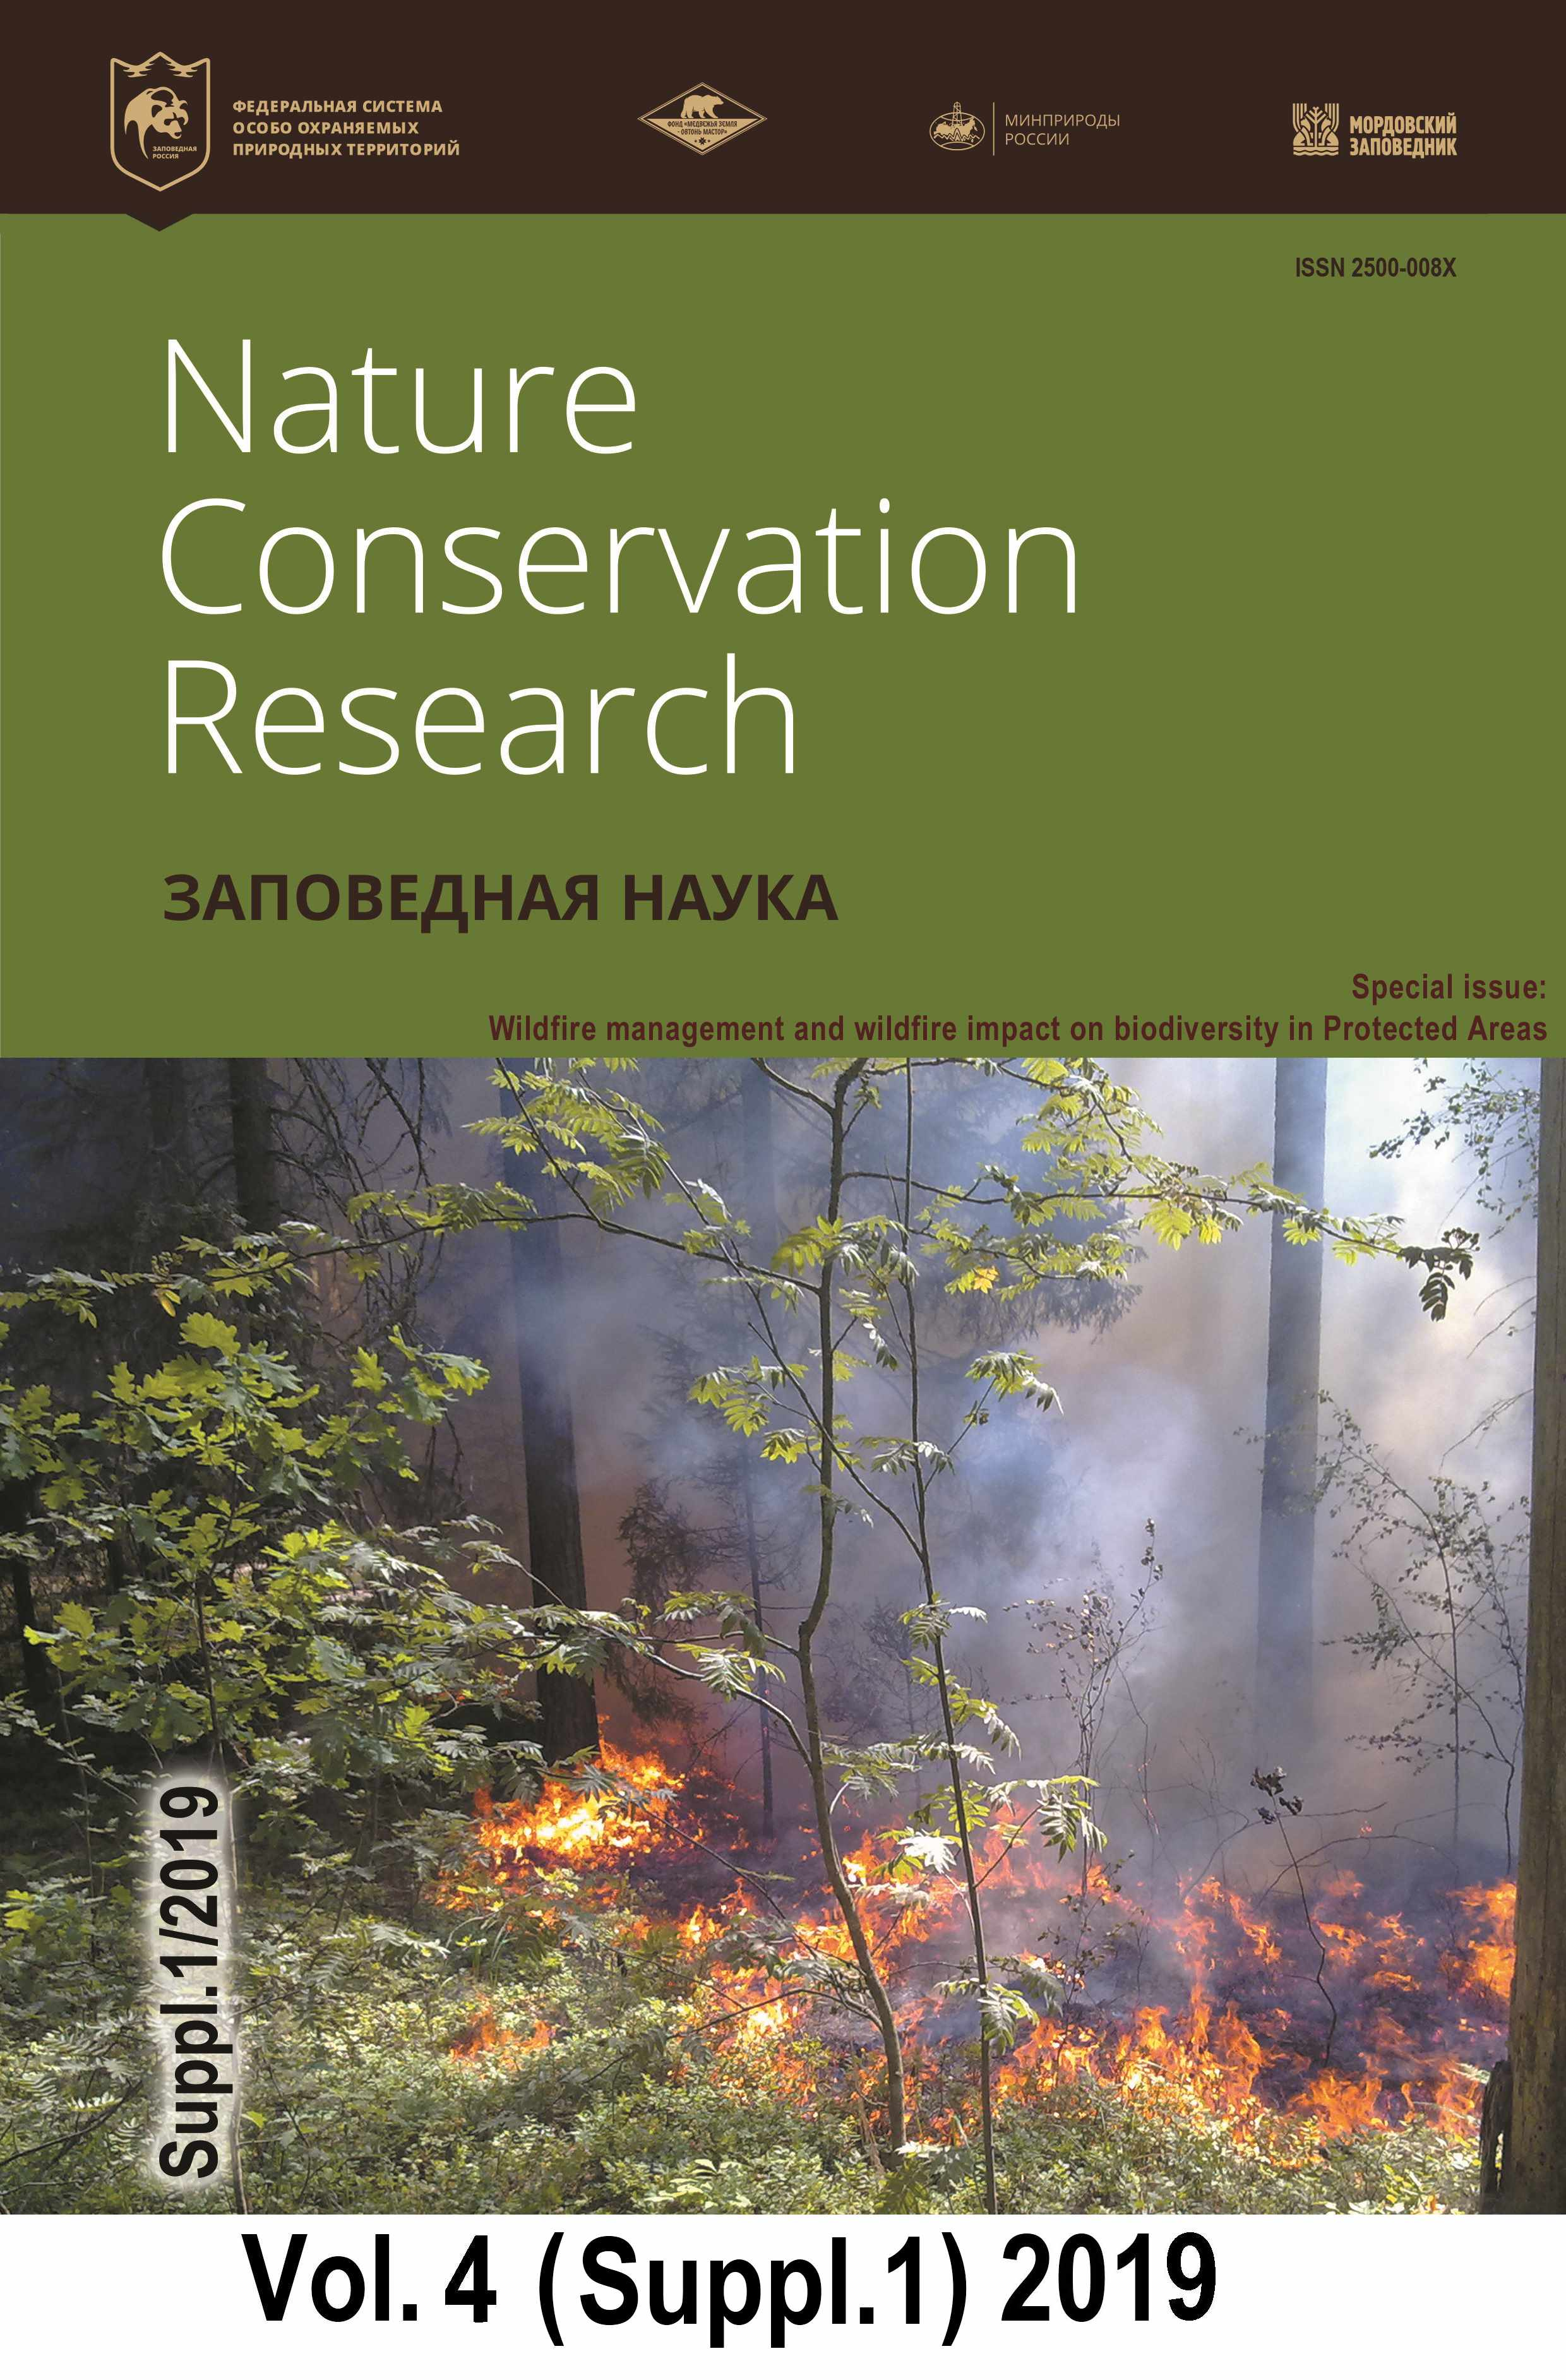 Volumes And Issues Of The Journal Nature Conservation Research